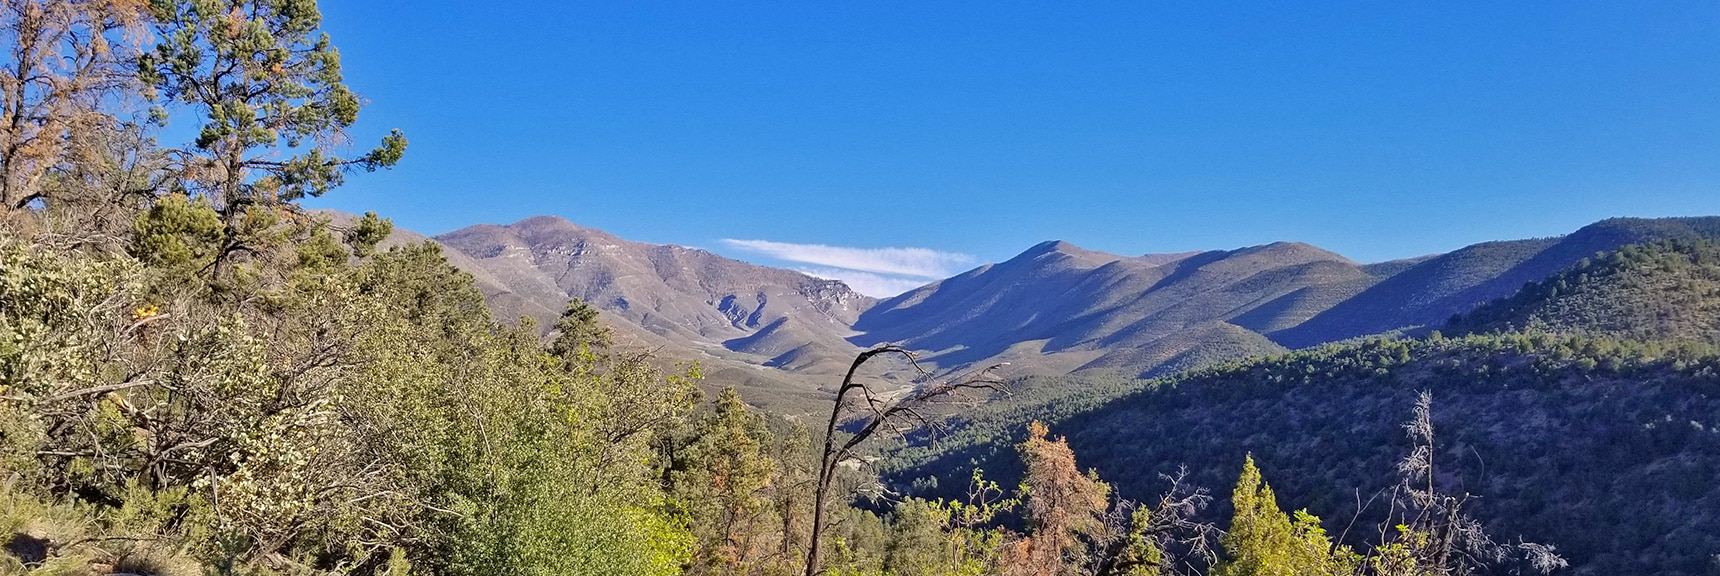 High View of Lovell Canyon, Griffith Peak, Harris Mt. and Saddle. | Harris Mountain from Lovell Canyon Nevada